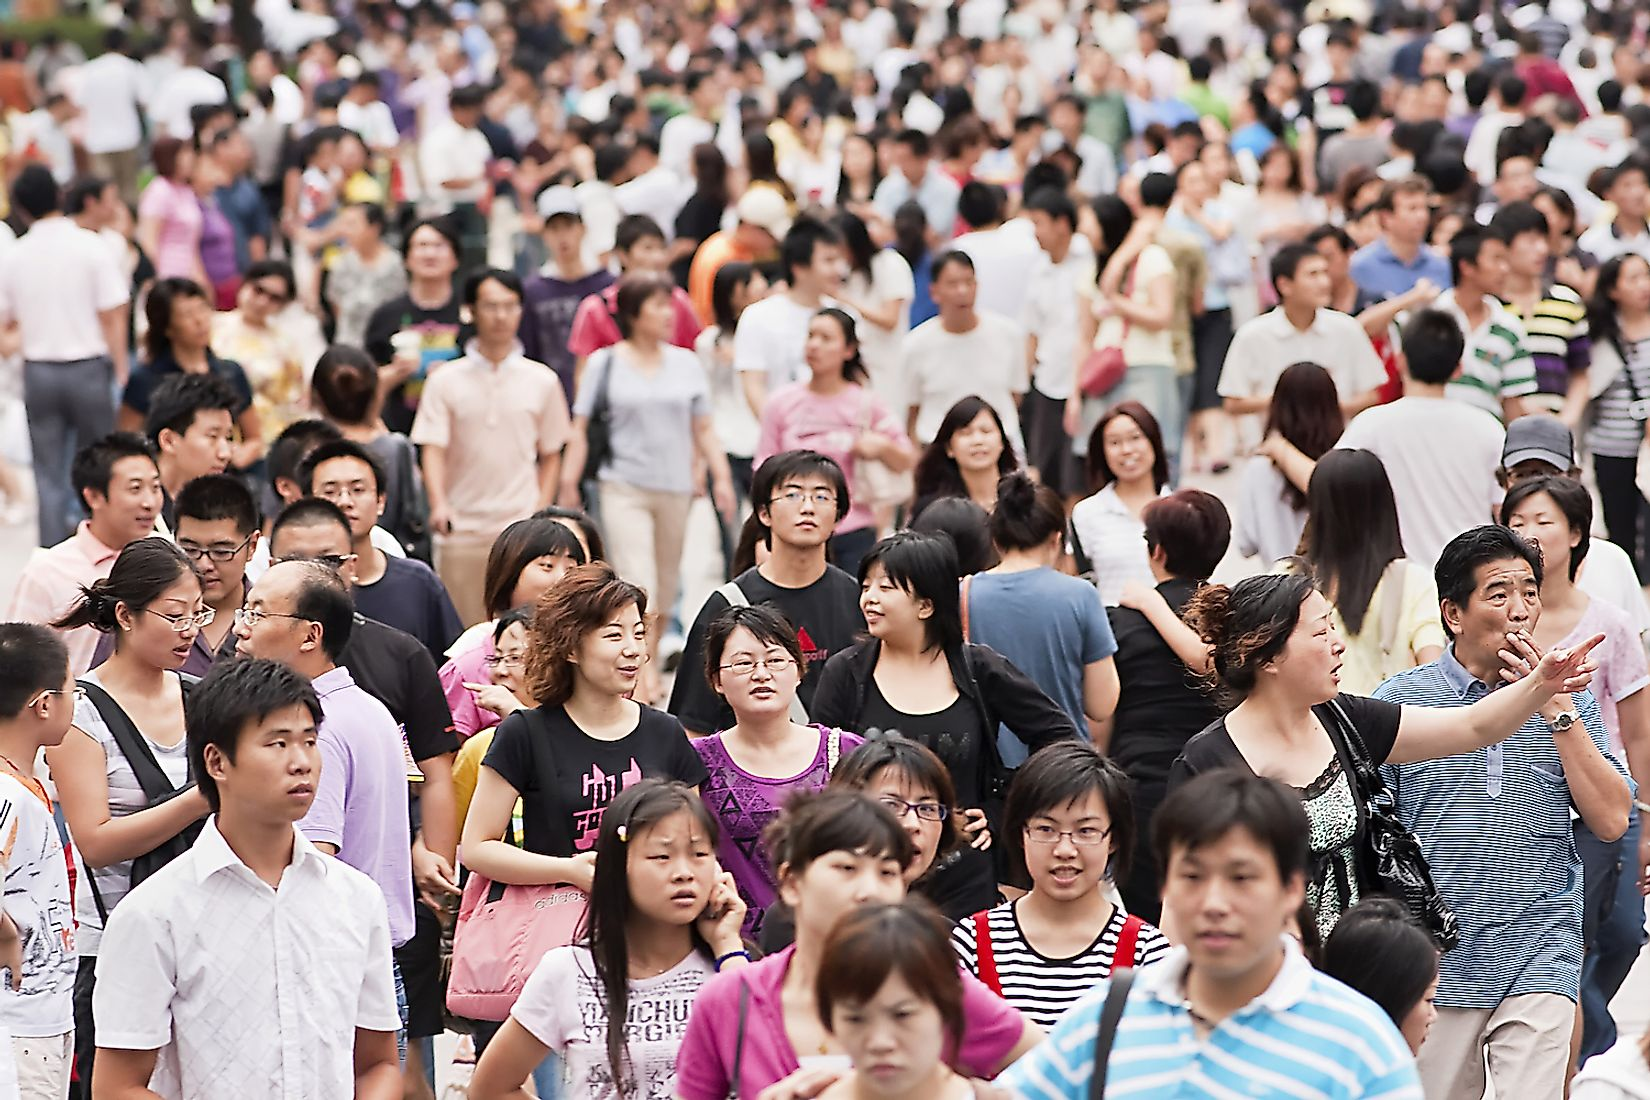 Crowd at Nanjing Road in Shanghai, China's most populated city. Image credit: TonyV3112/Shutterstock.com